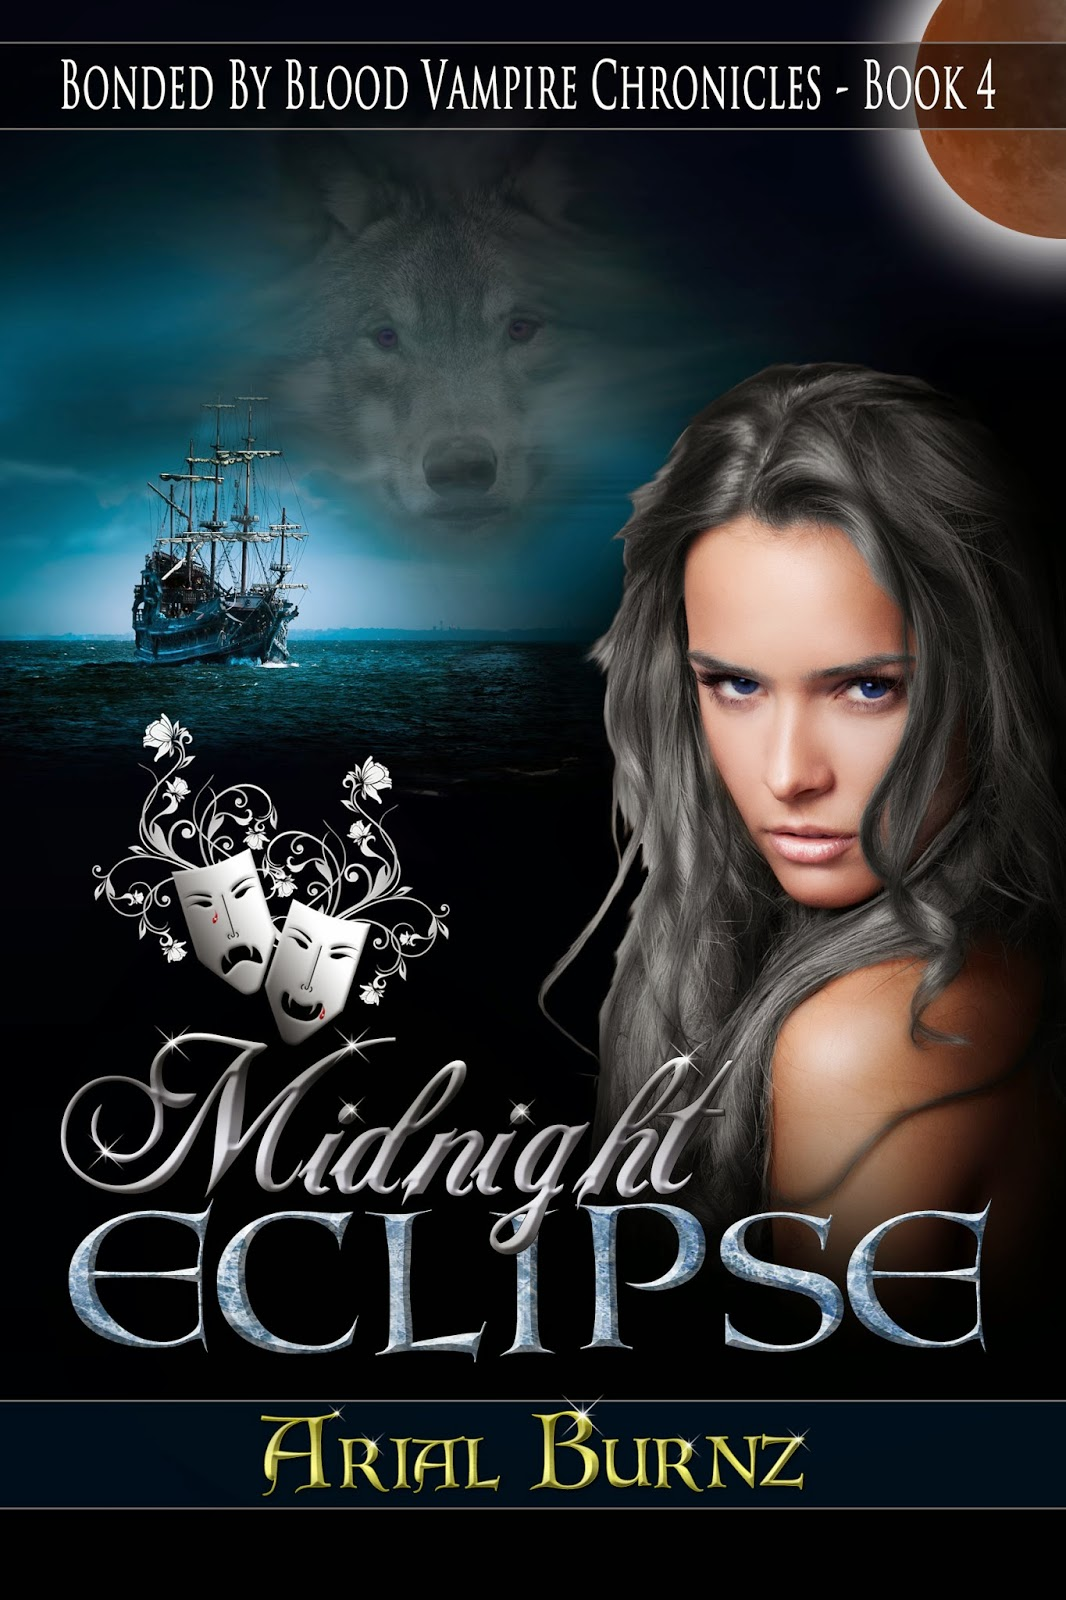 https://www.goodreads.com/book/show/23163309-midnight-eclipse?ac=1